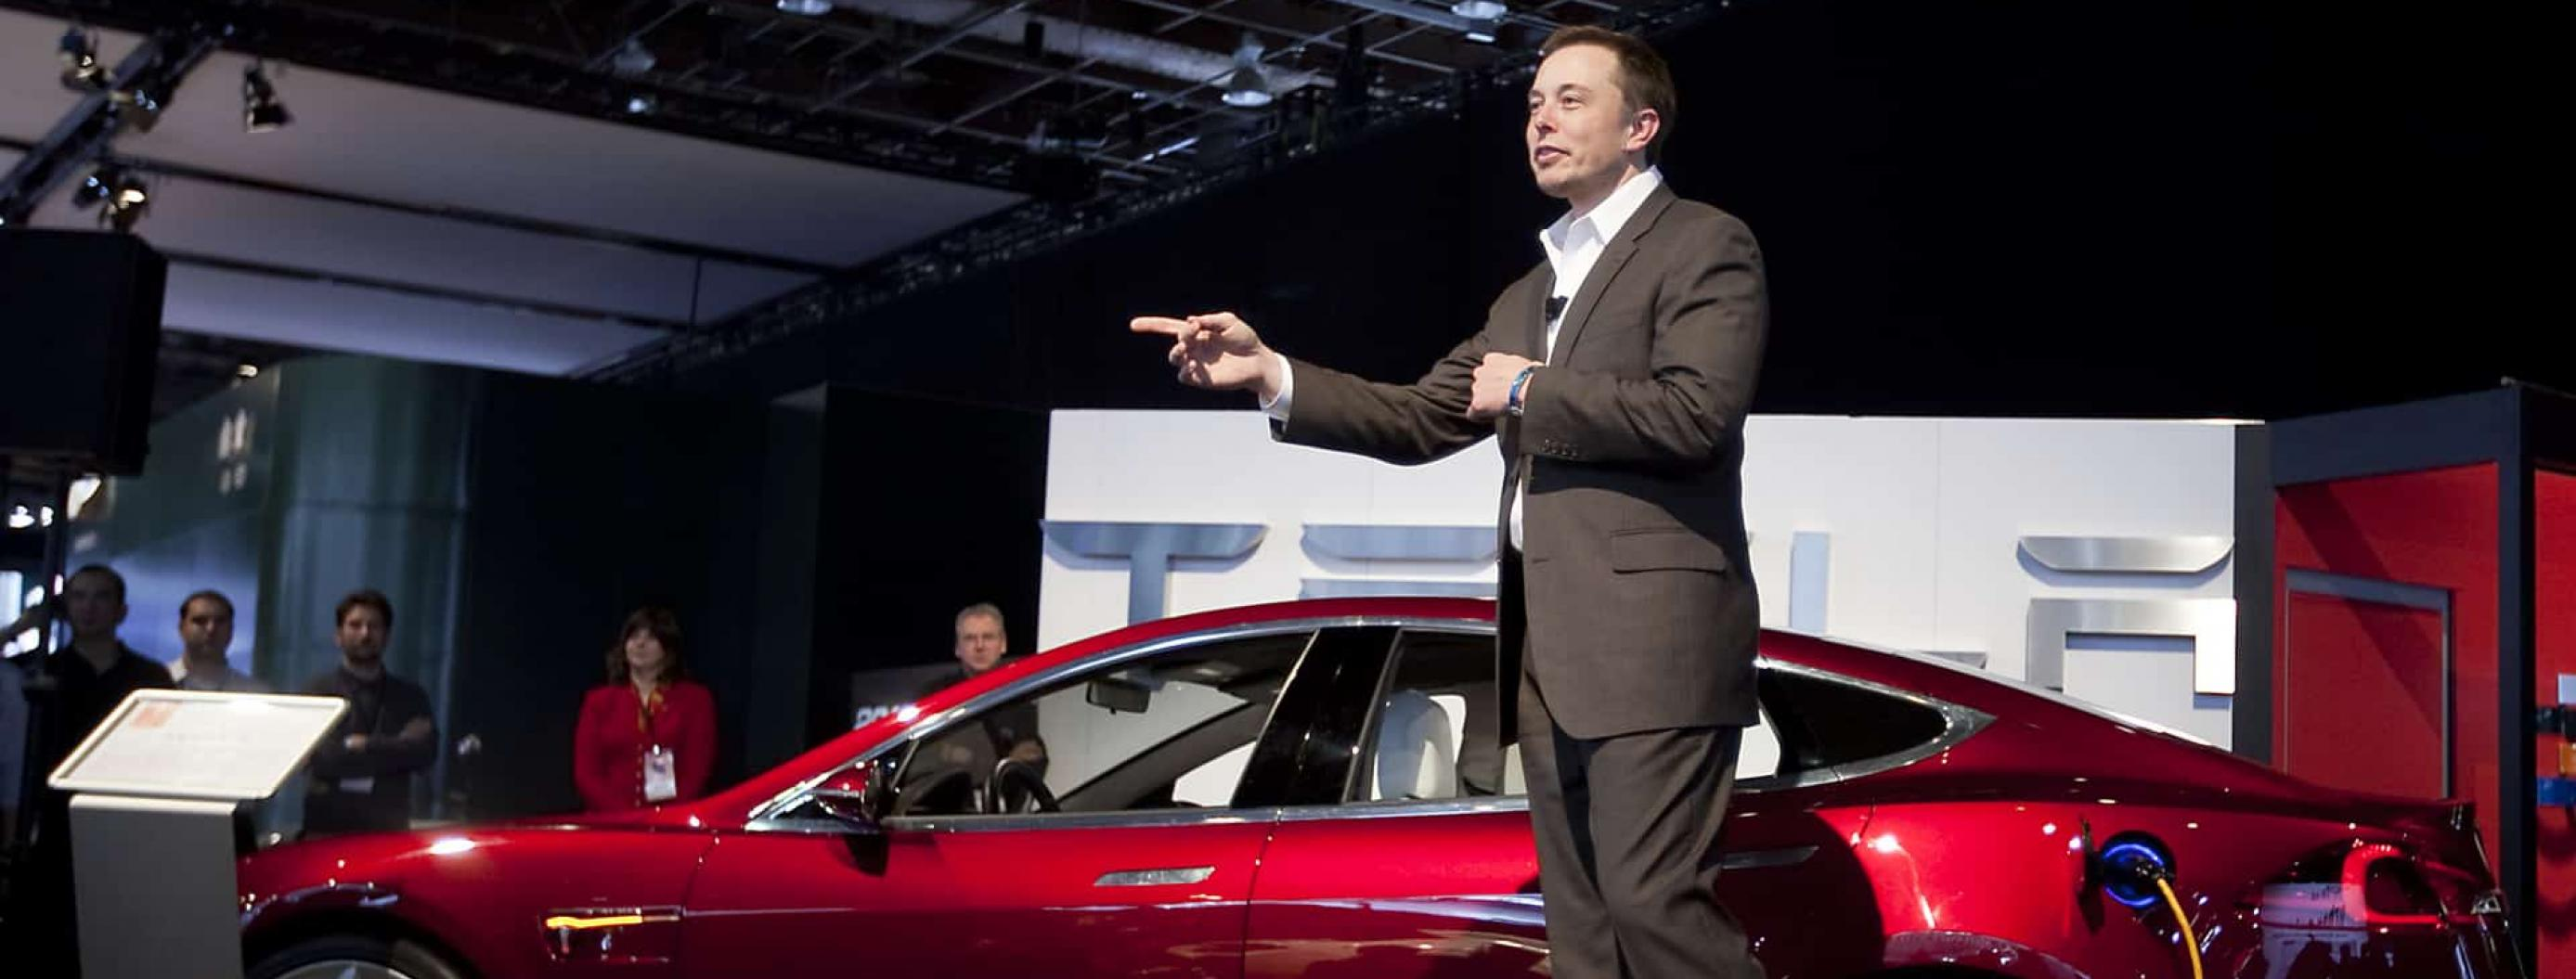 Tesla Model Y is Now Ready for Production According to Elon Musk